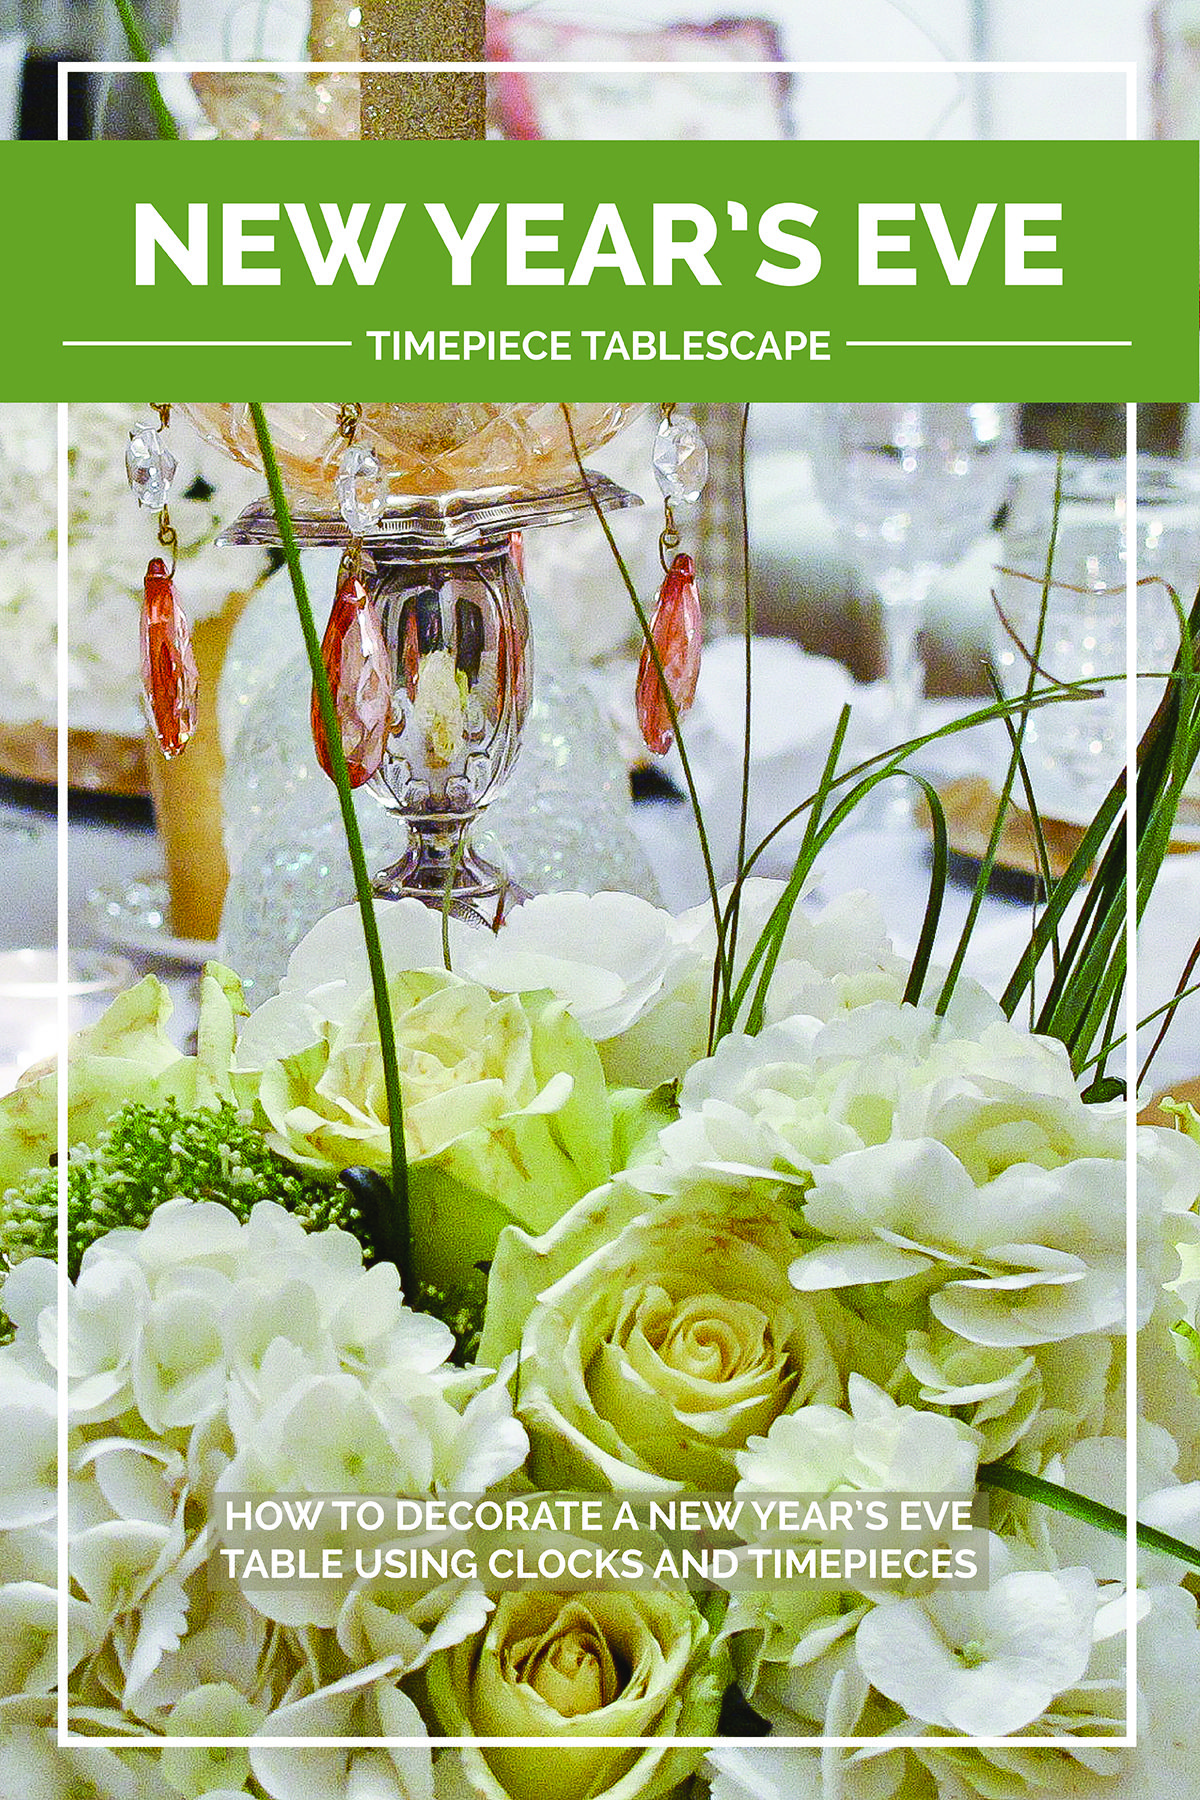 new years eve tablescape decorating the table with timepiece imagery to ring in the new year designthusiasm